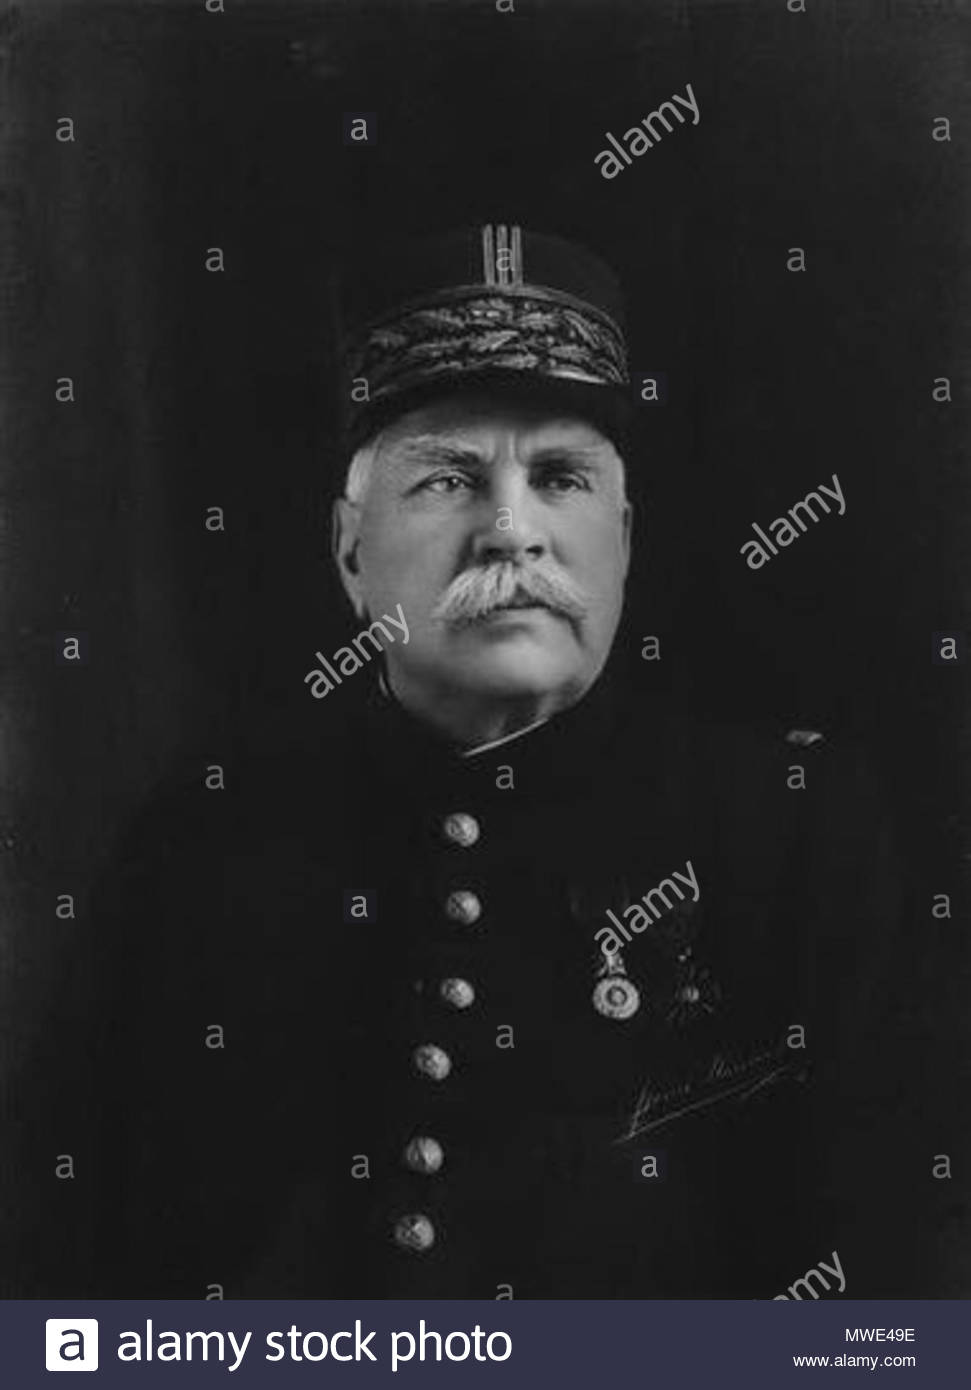 . English: Joseph Joffre . 30 October 2012, 17:07:52.   Henri Manuel  (1874–1947)    Description French photographer  Date of birth/death 24 April 1874 11 September 1947  Location of birth/death Paris Neuilly-sur-Seine  Work location Paris  Authority control  : Q3131559 VIAF: 69197545 ISNI: 0000 0001 2281 4329 ULAN: 500054098 SUDOC: 091373182 BNF: 14841349b 271 Henri Manuel - Joseph Joffre - Stock Image